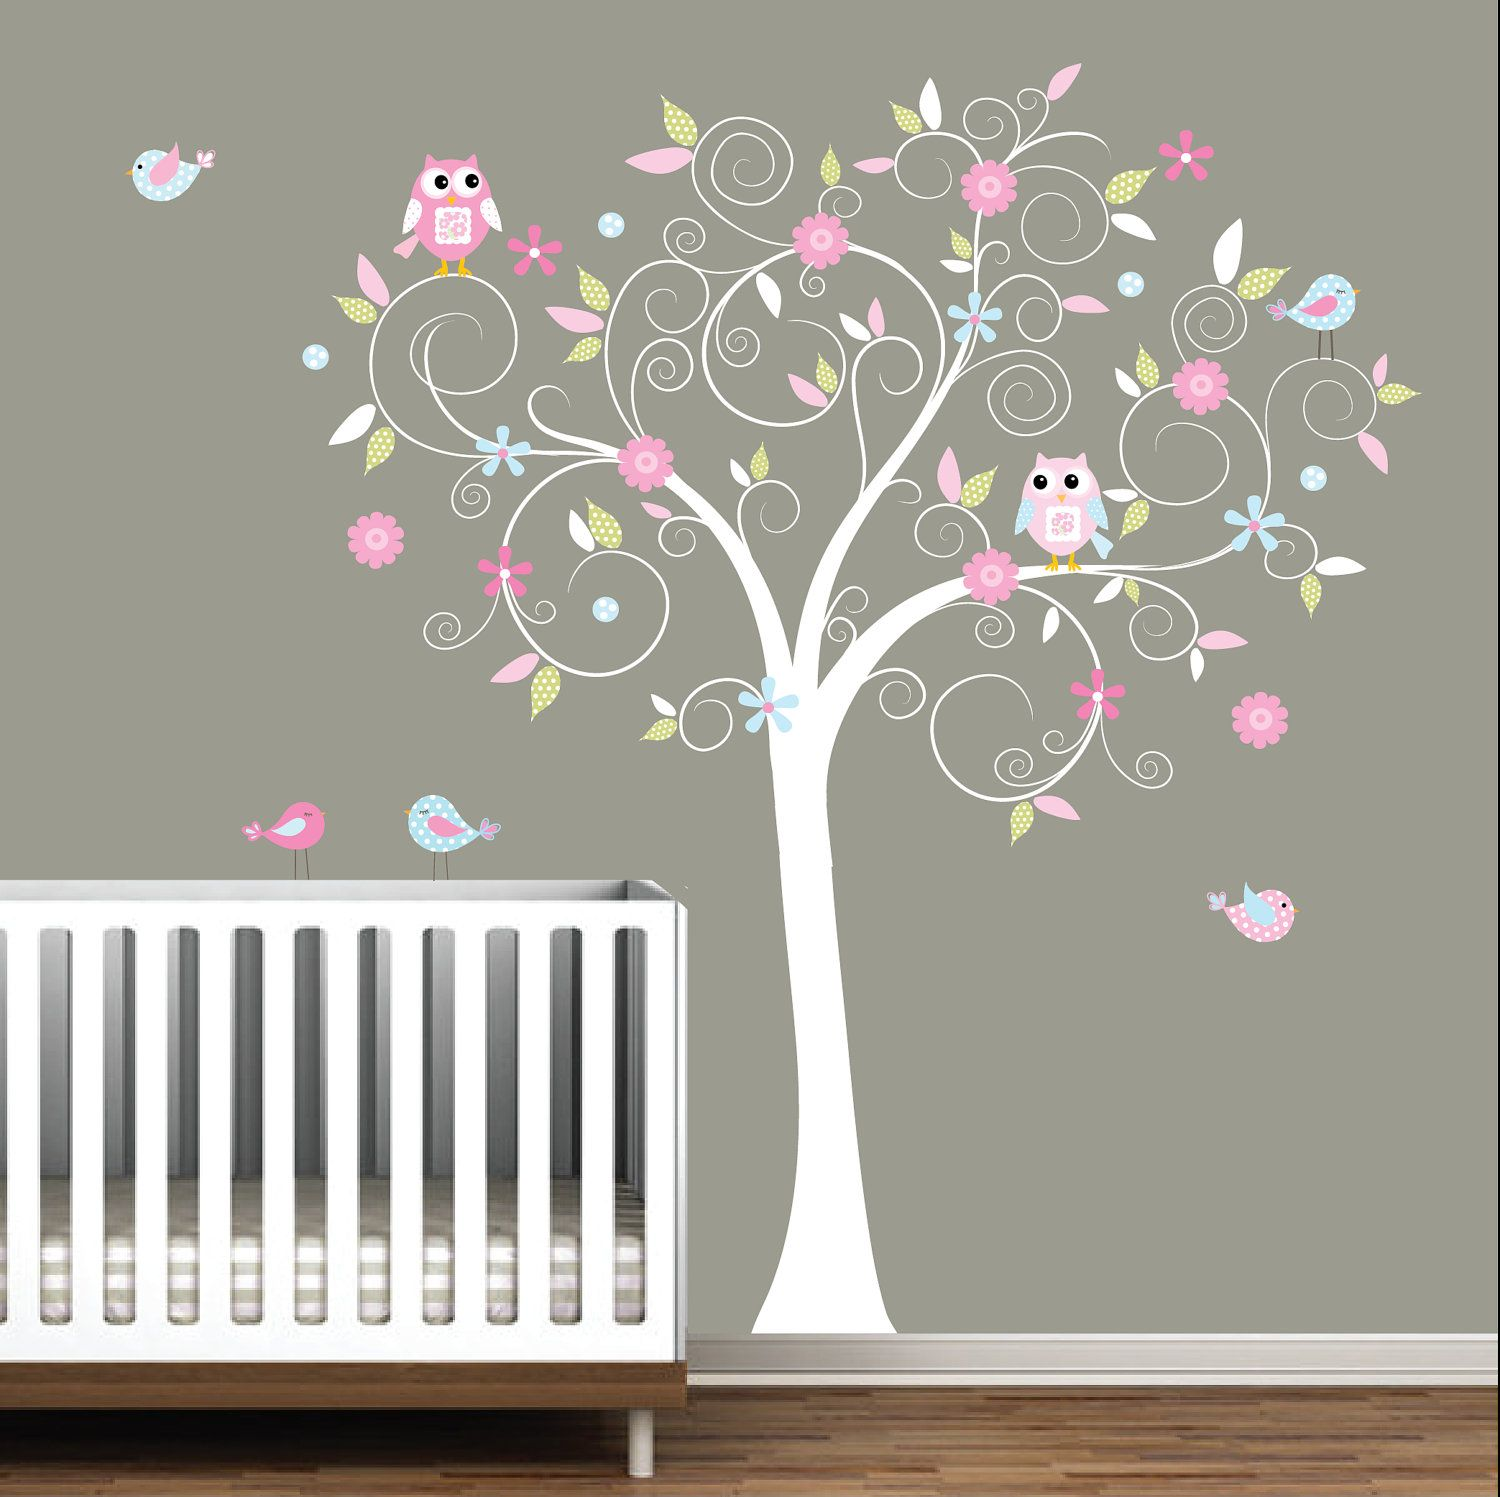 Tree Decal Children Wall Stickers Wall Vinyl Art by Modernwalls